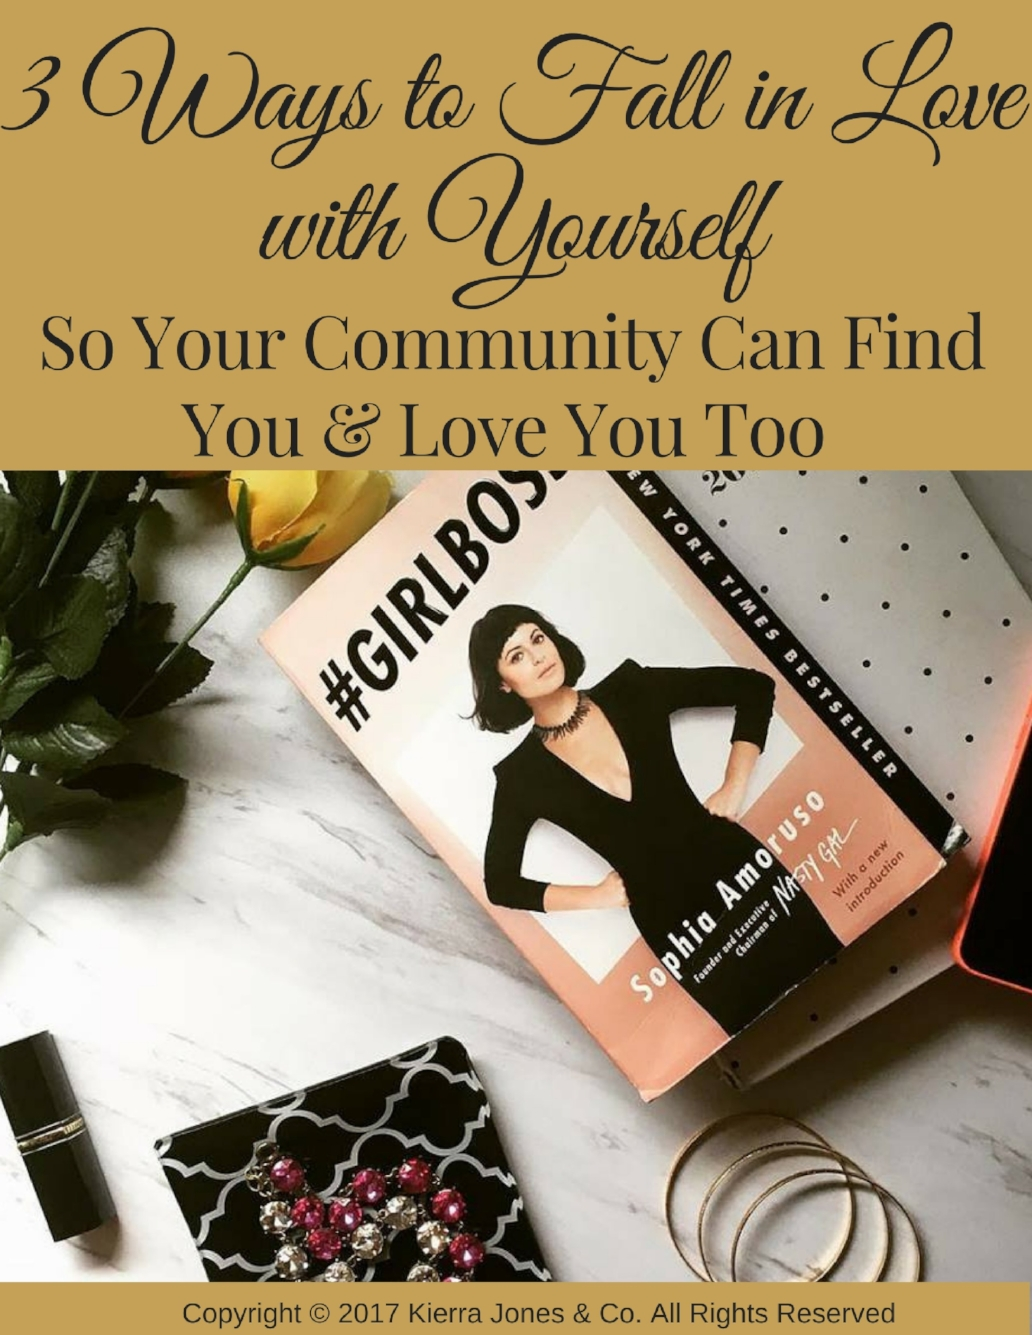 Ready to confidently connect with your community?  Help them authentically fall in love with you & want to buy through your messaging & content!